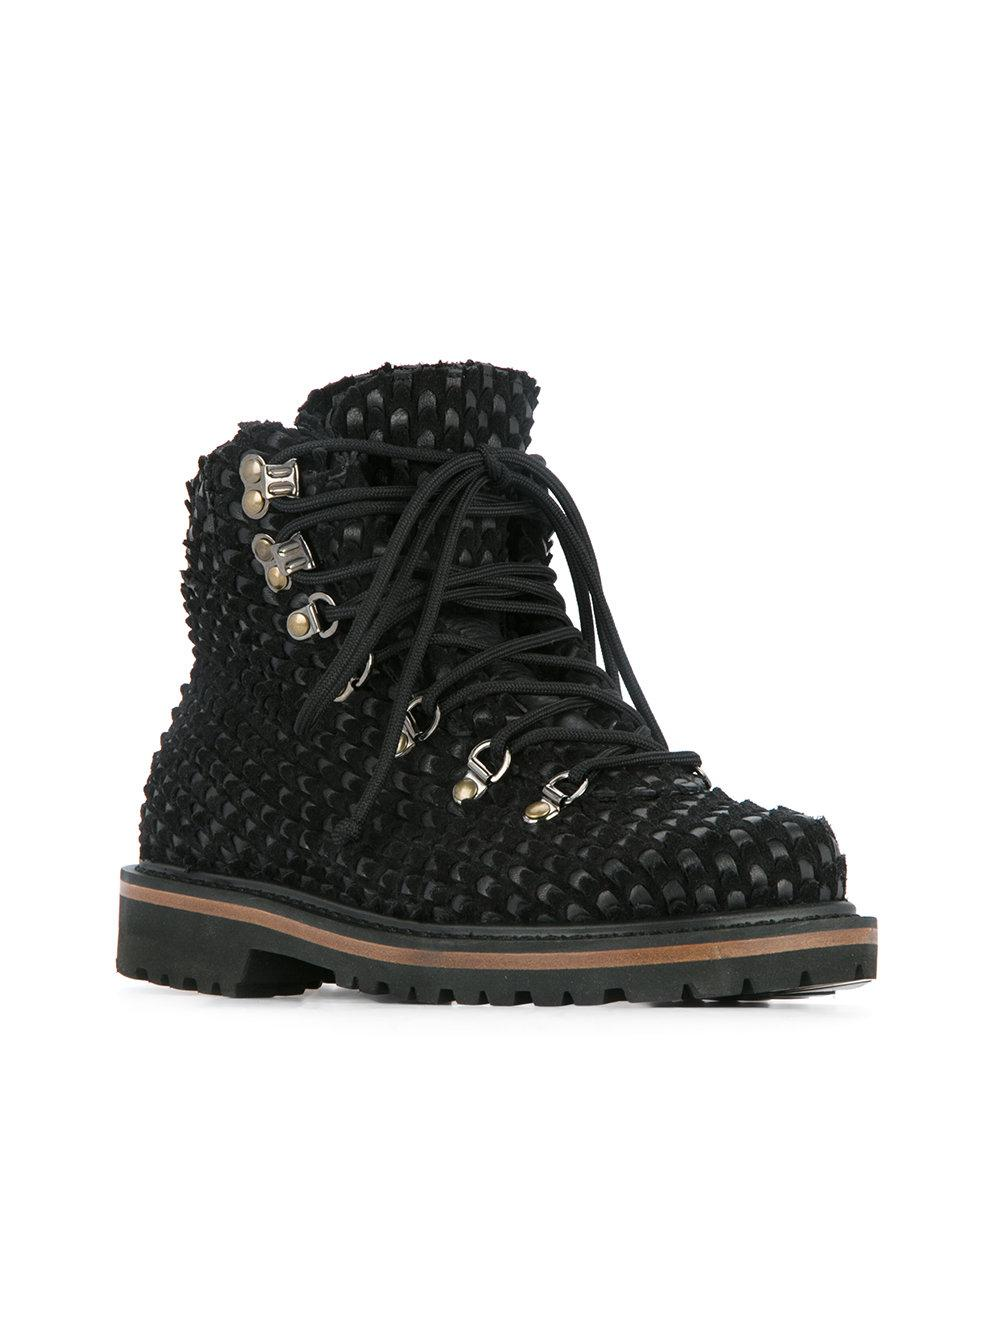 2731fe7f75c7 Peter Non Arctic Mountain Boots in Black - Lyst